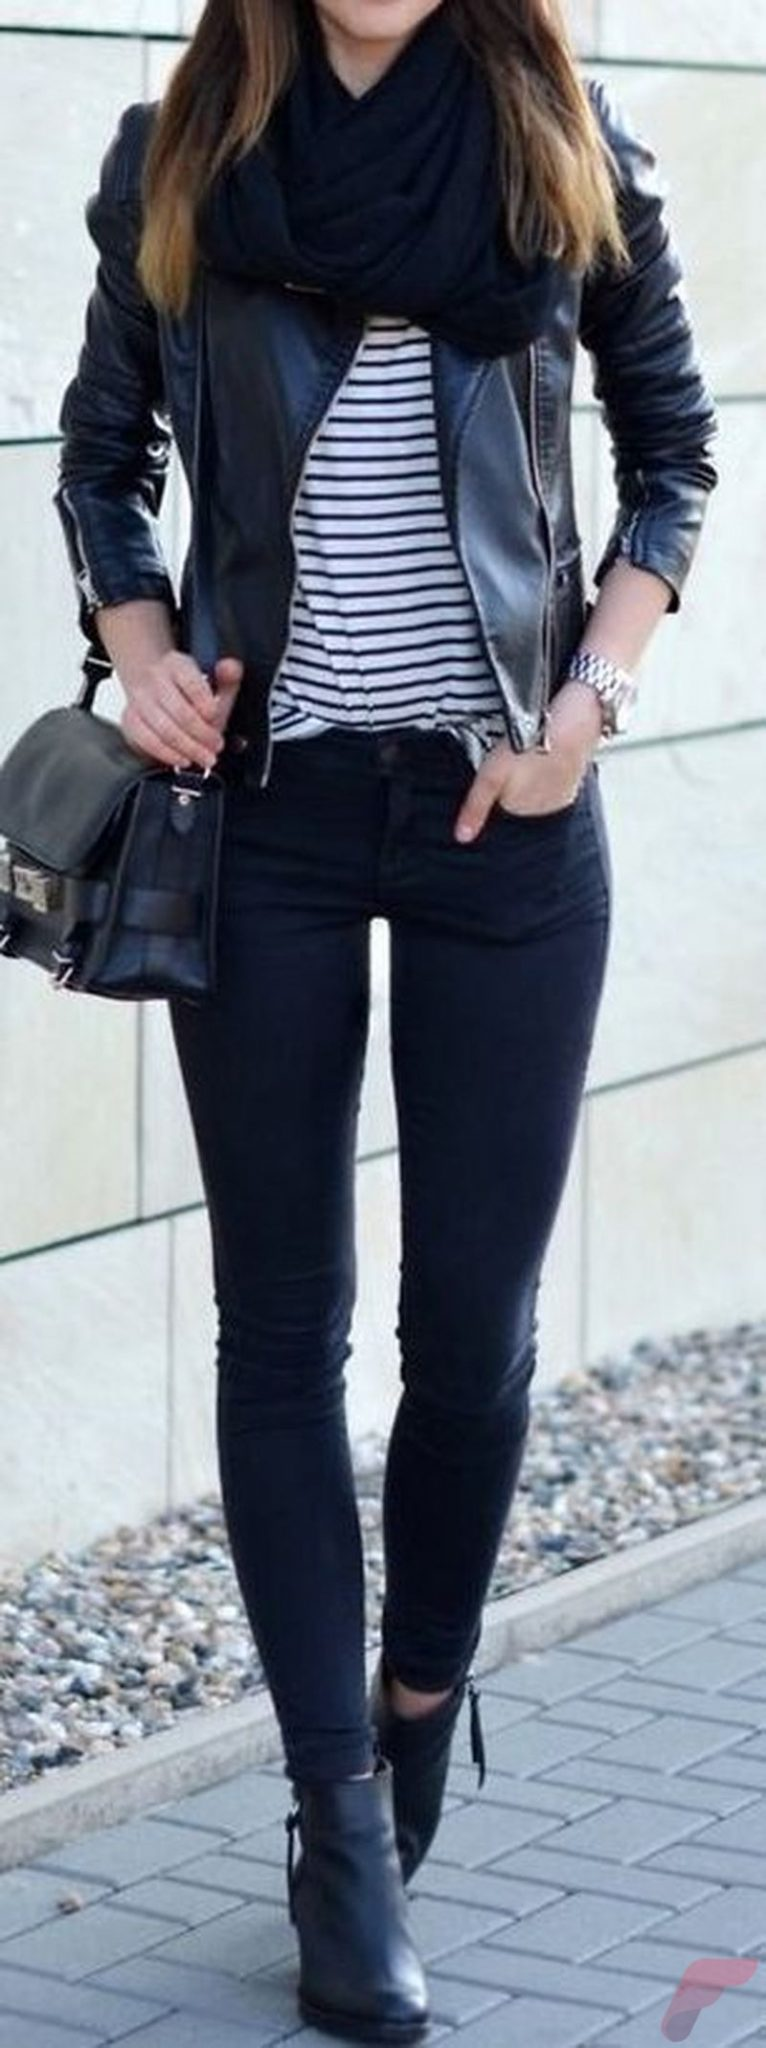 Black leather jacket outfit 51